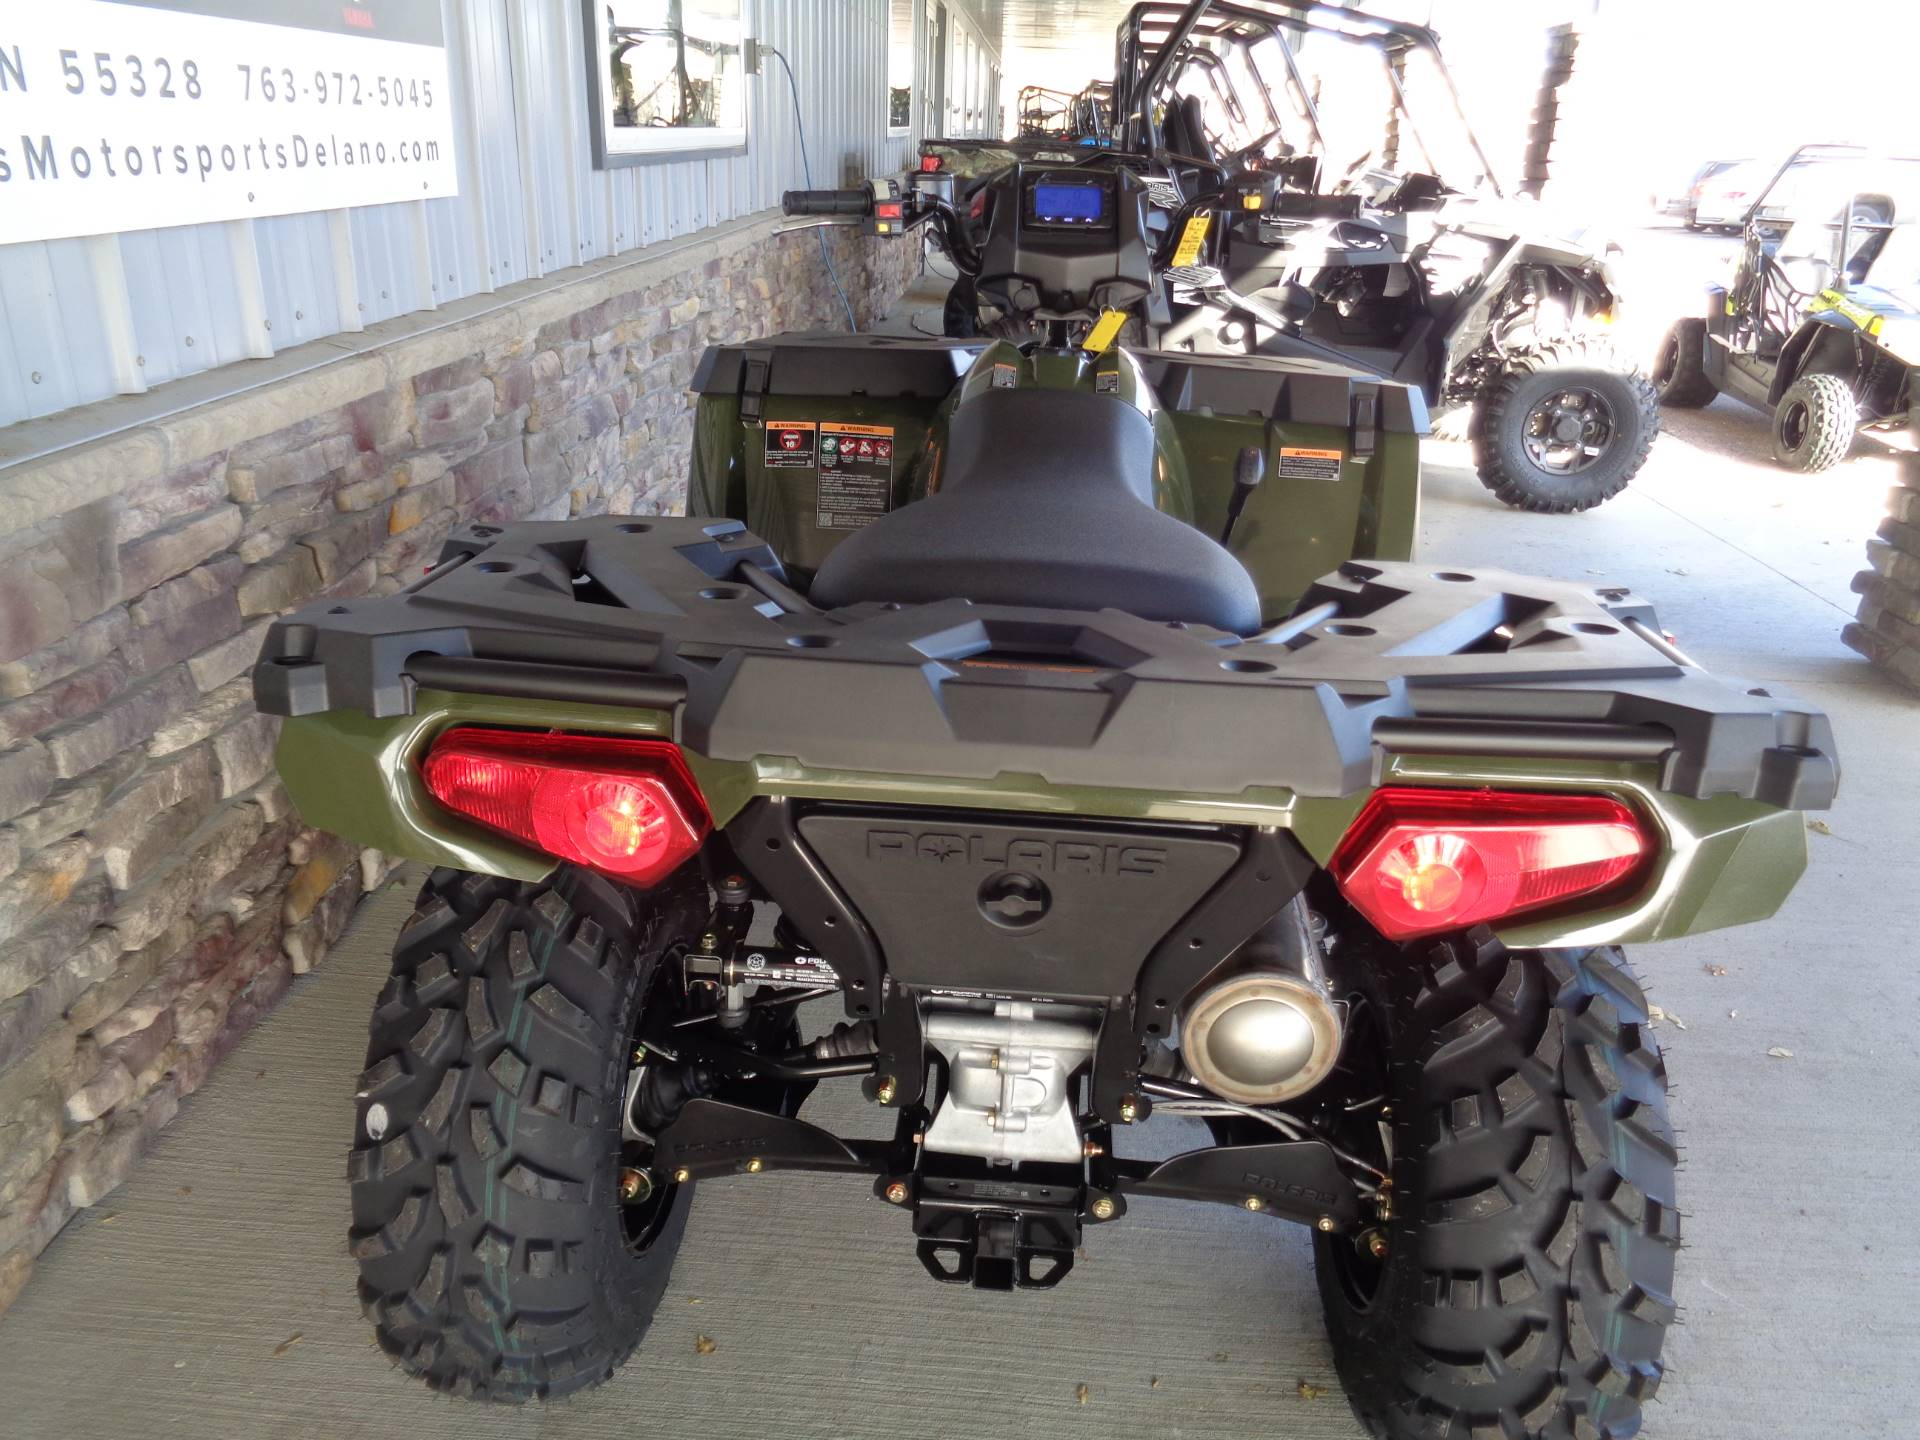 2019 Polaris Sportsman 570 in Delano, Minnesota - Photo 9